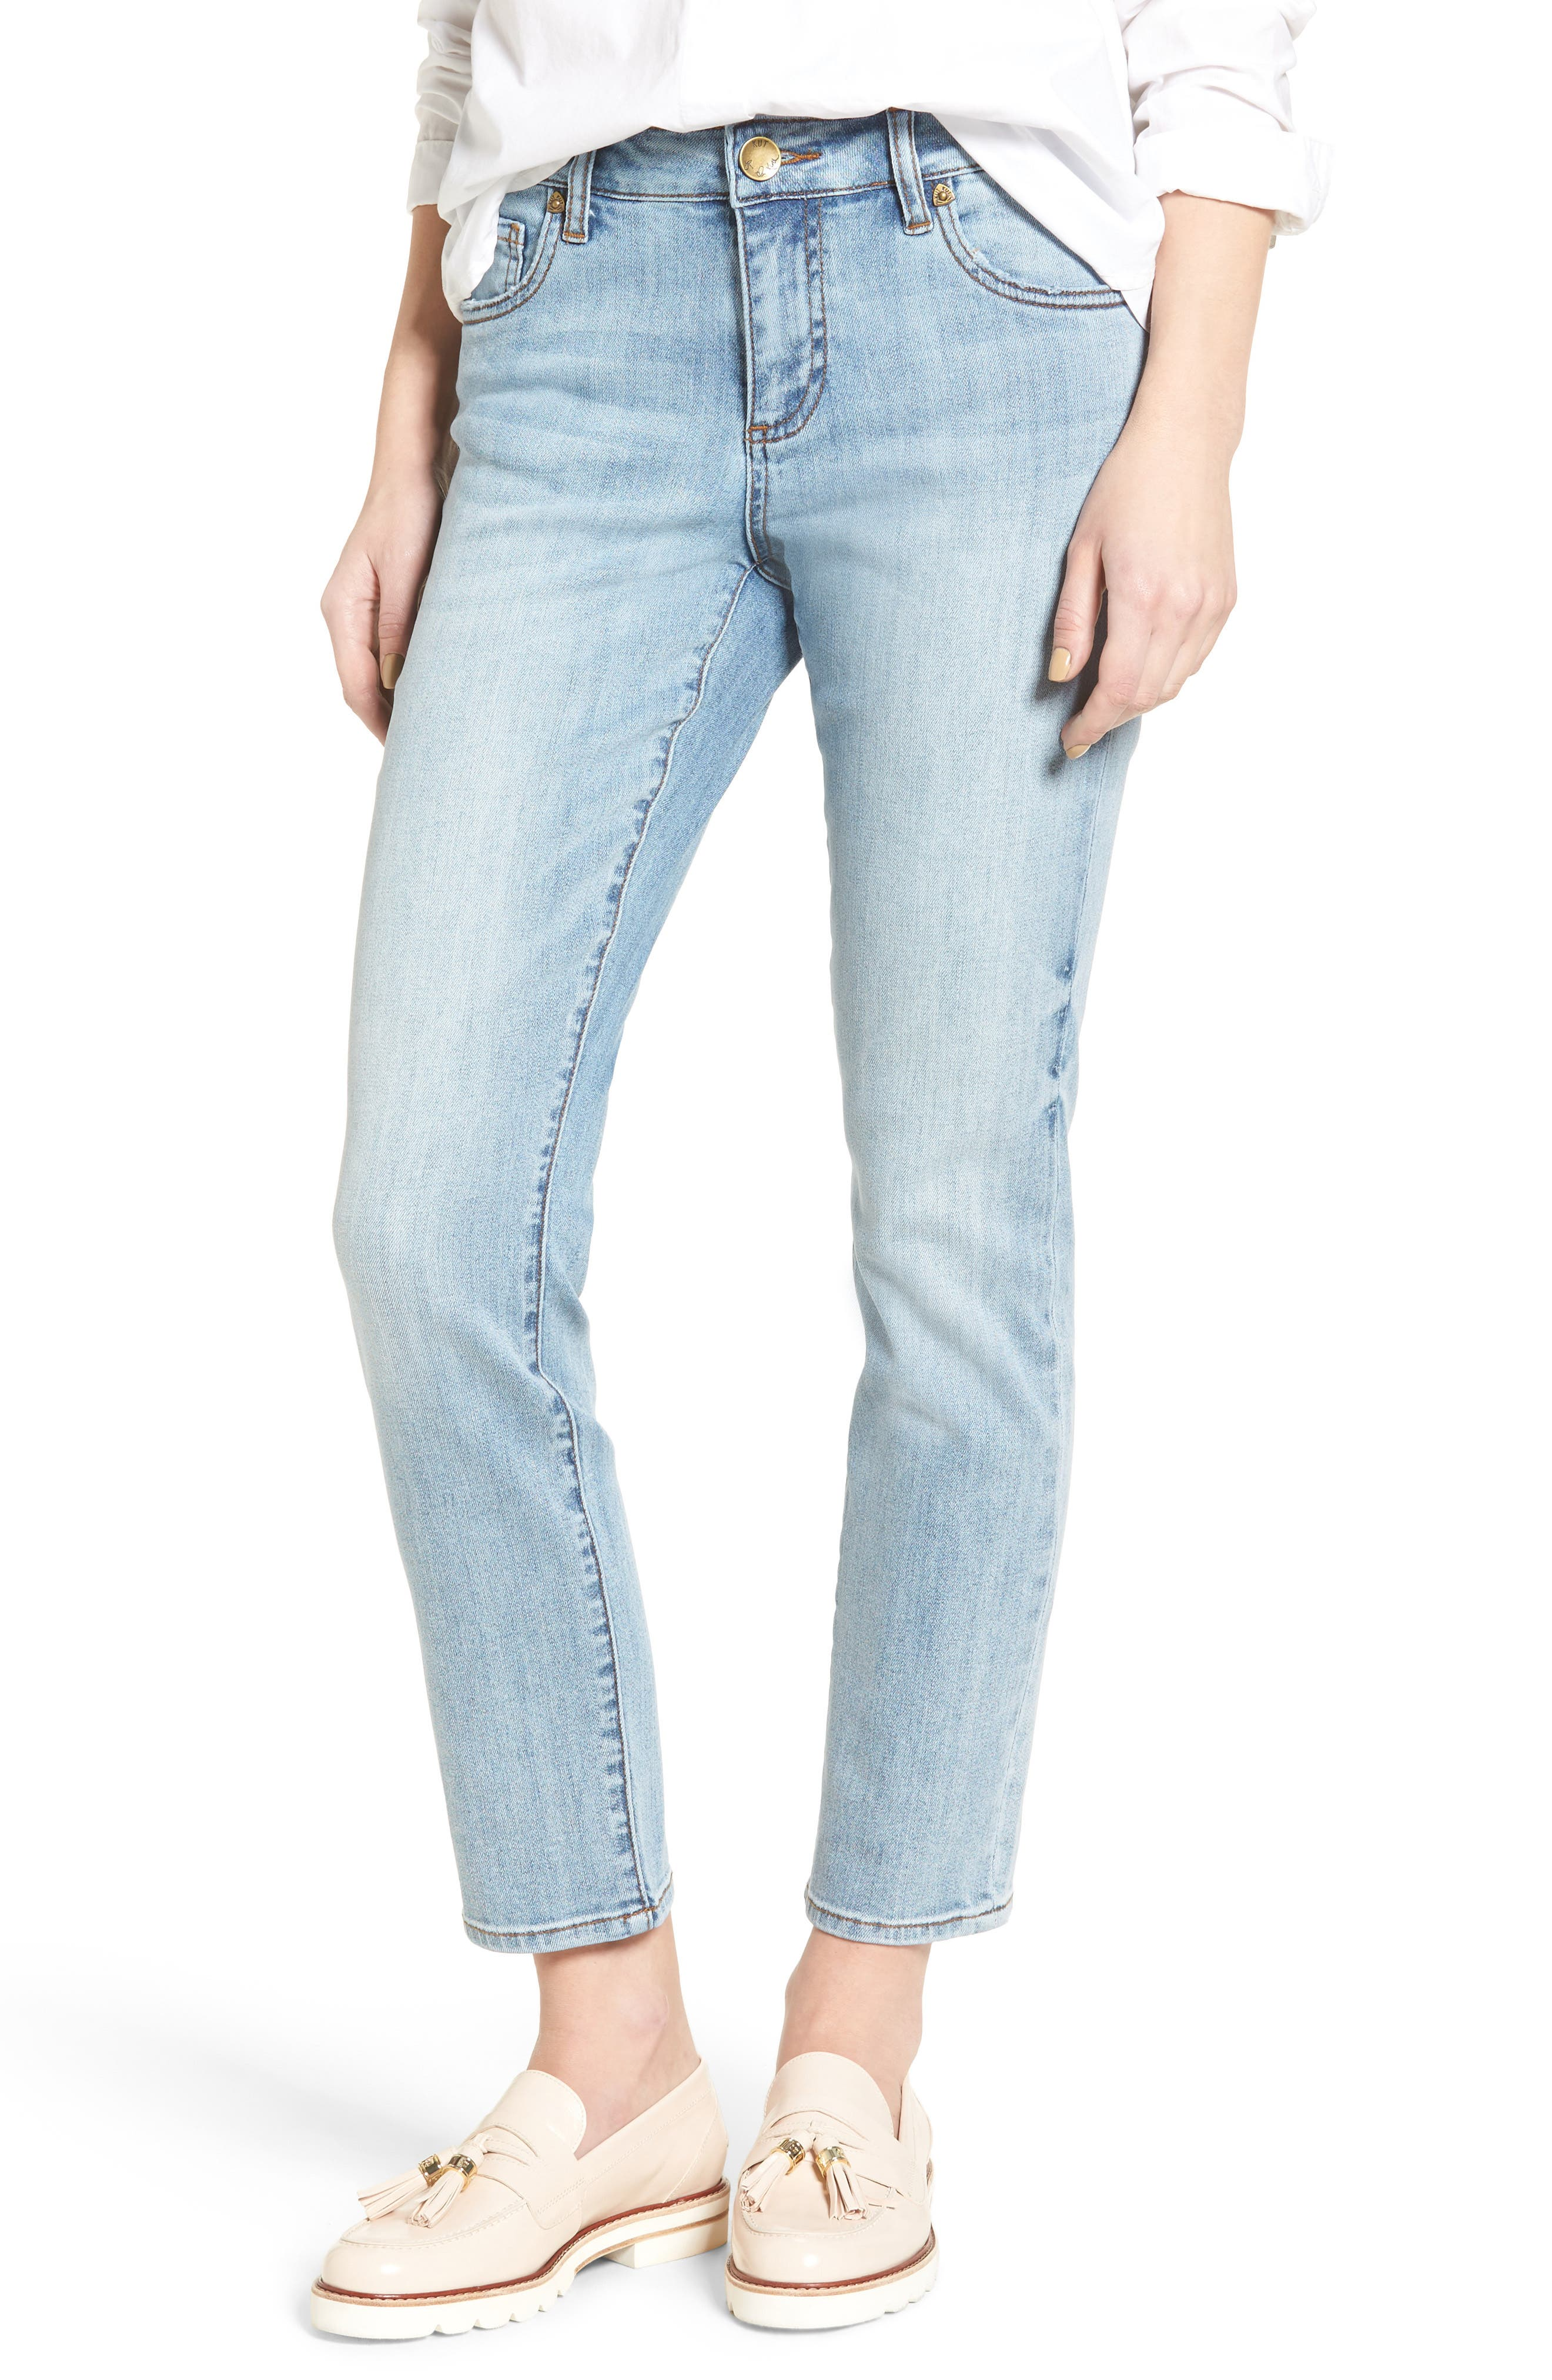 Alternate Image 1 Selected - KUT from the Kloth Reese Stretch Ankle Straight Leg Jeans (Celebratory)